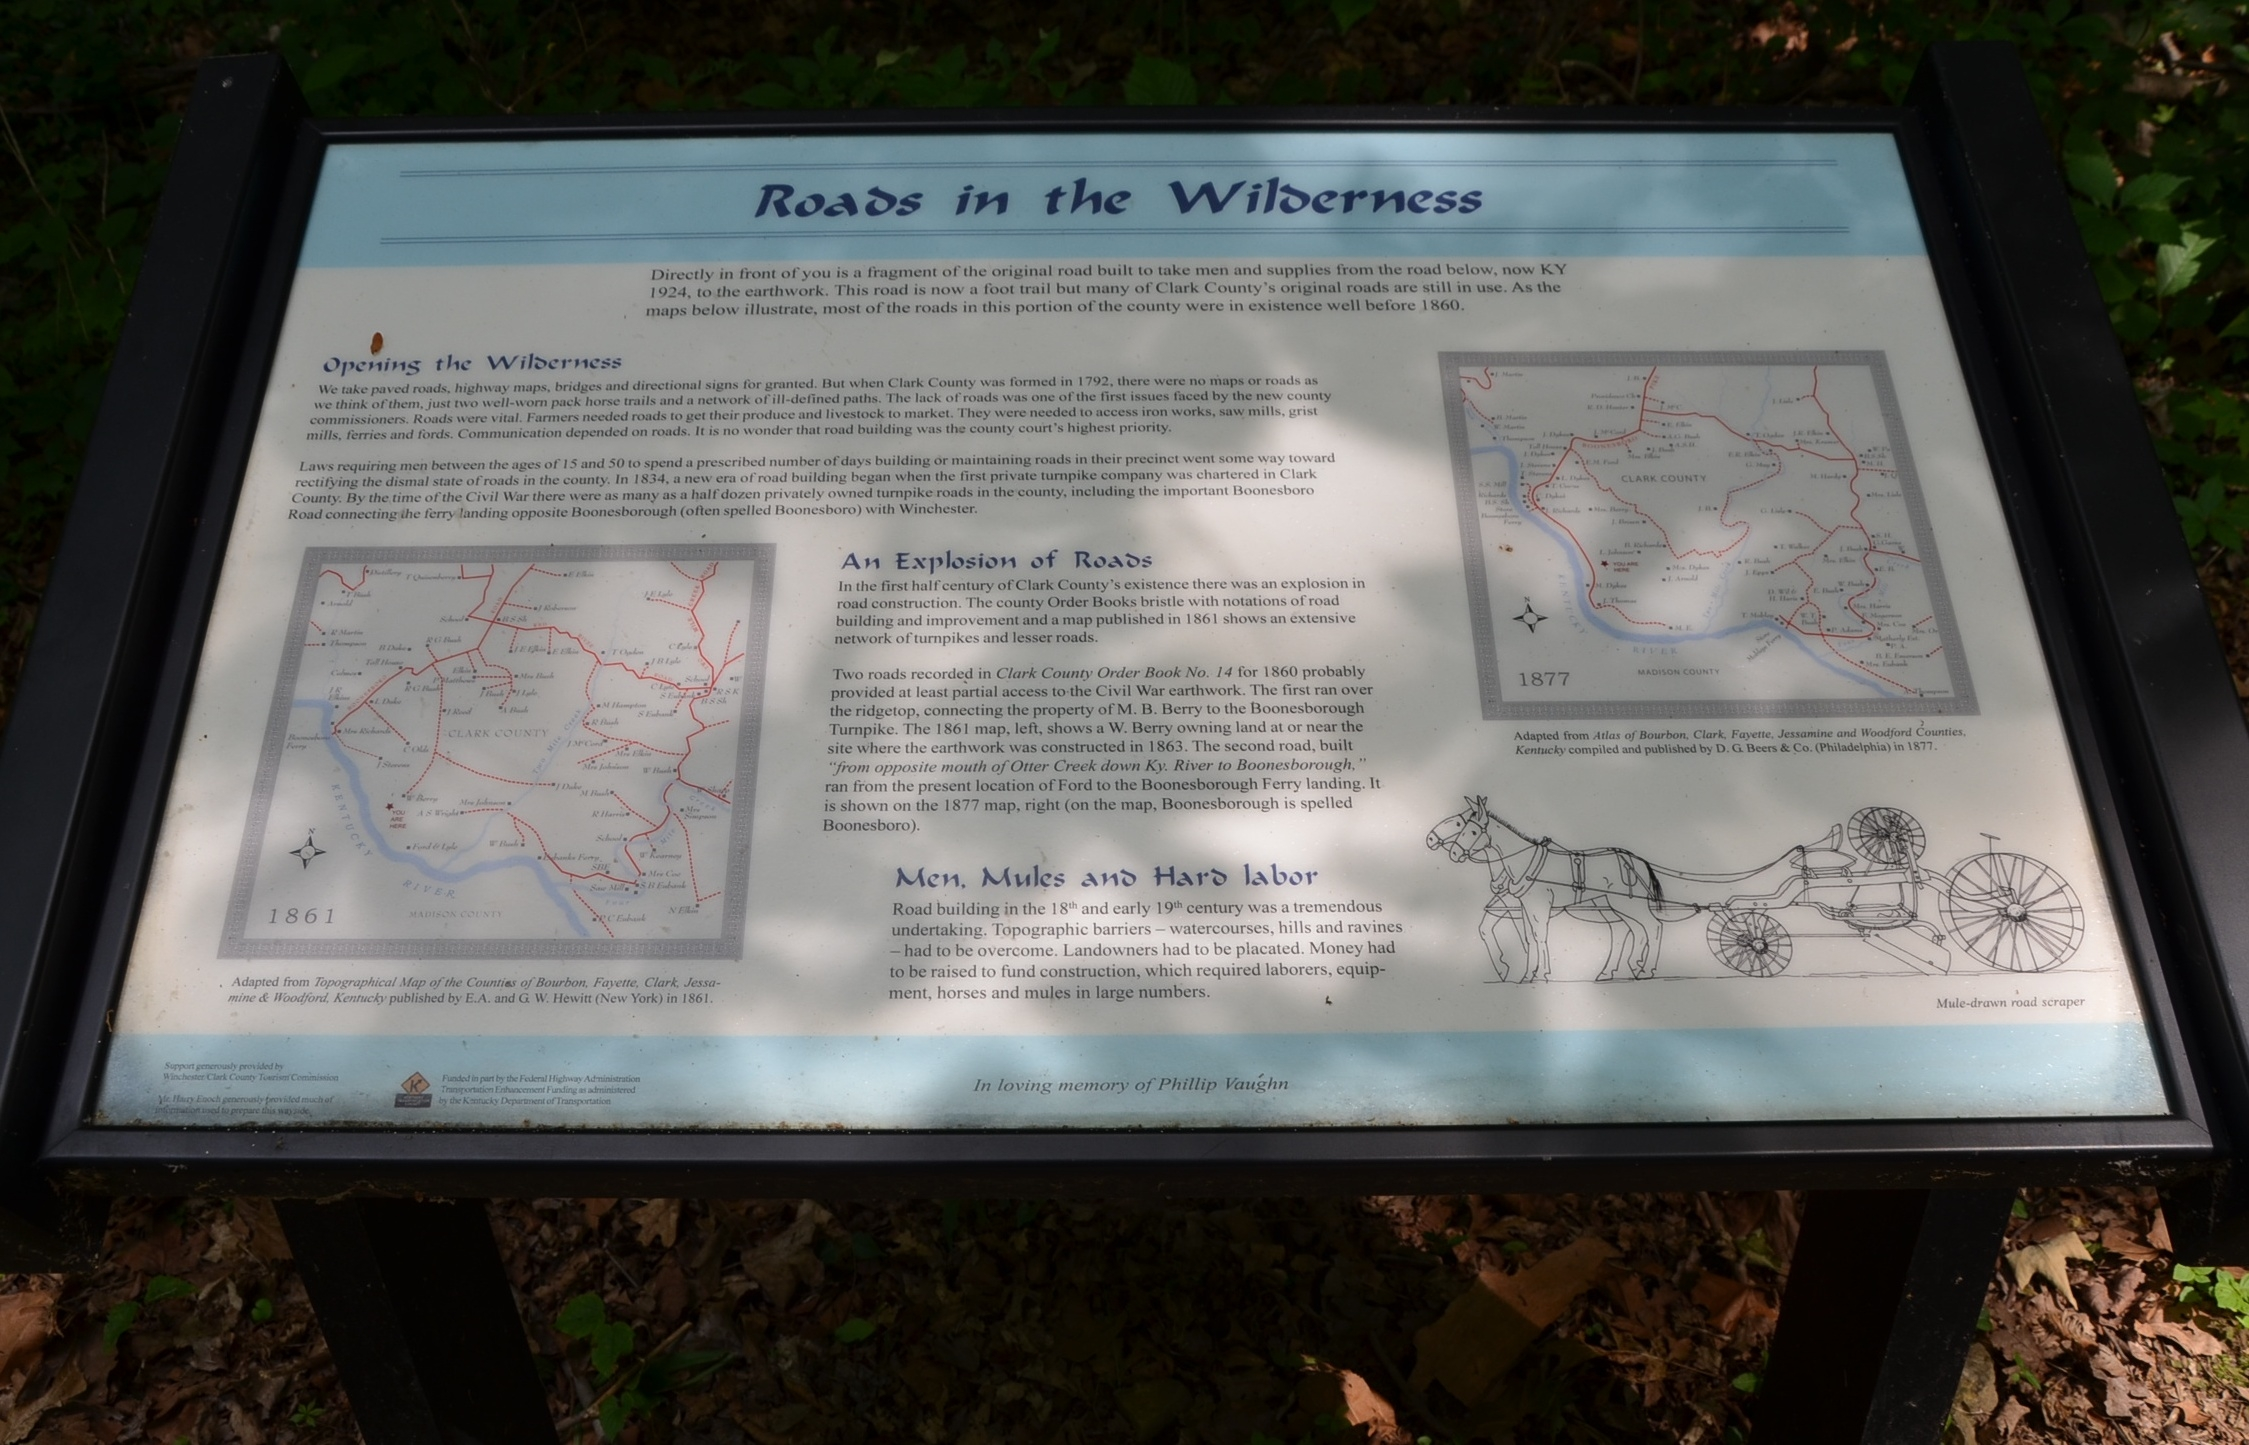 Roads in the Wilderness Wayside Exhibit